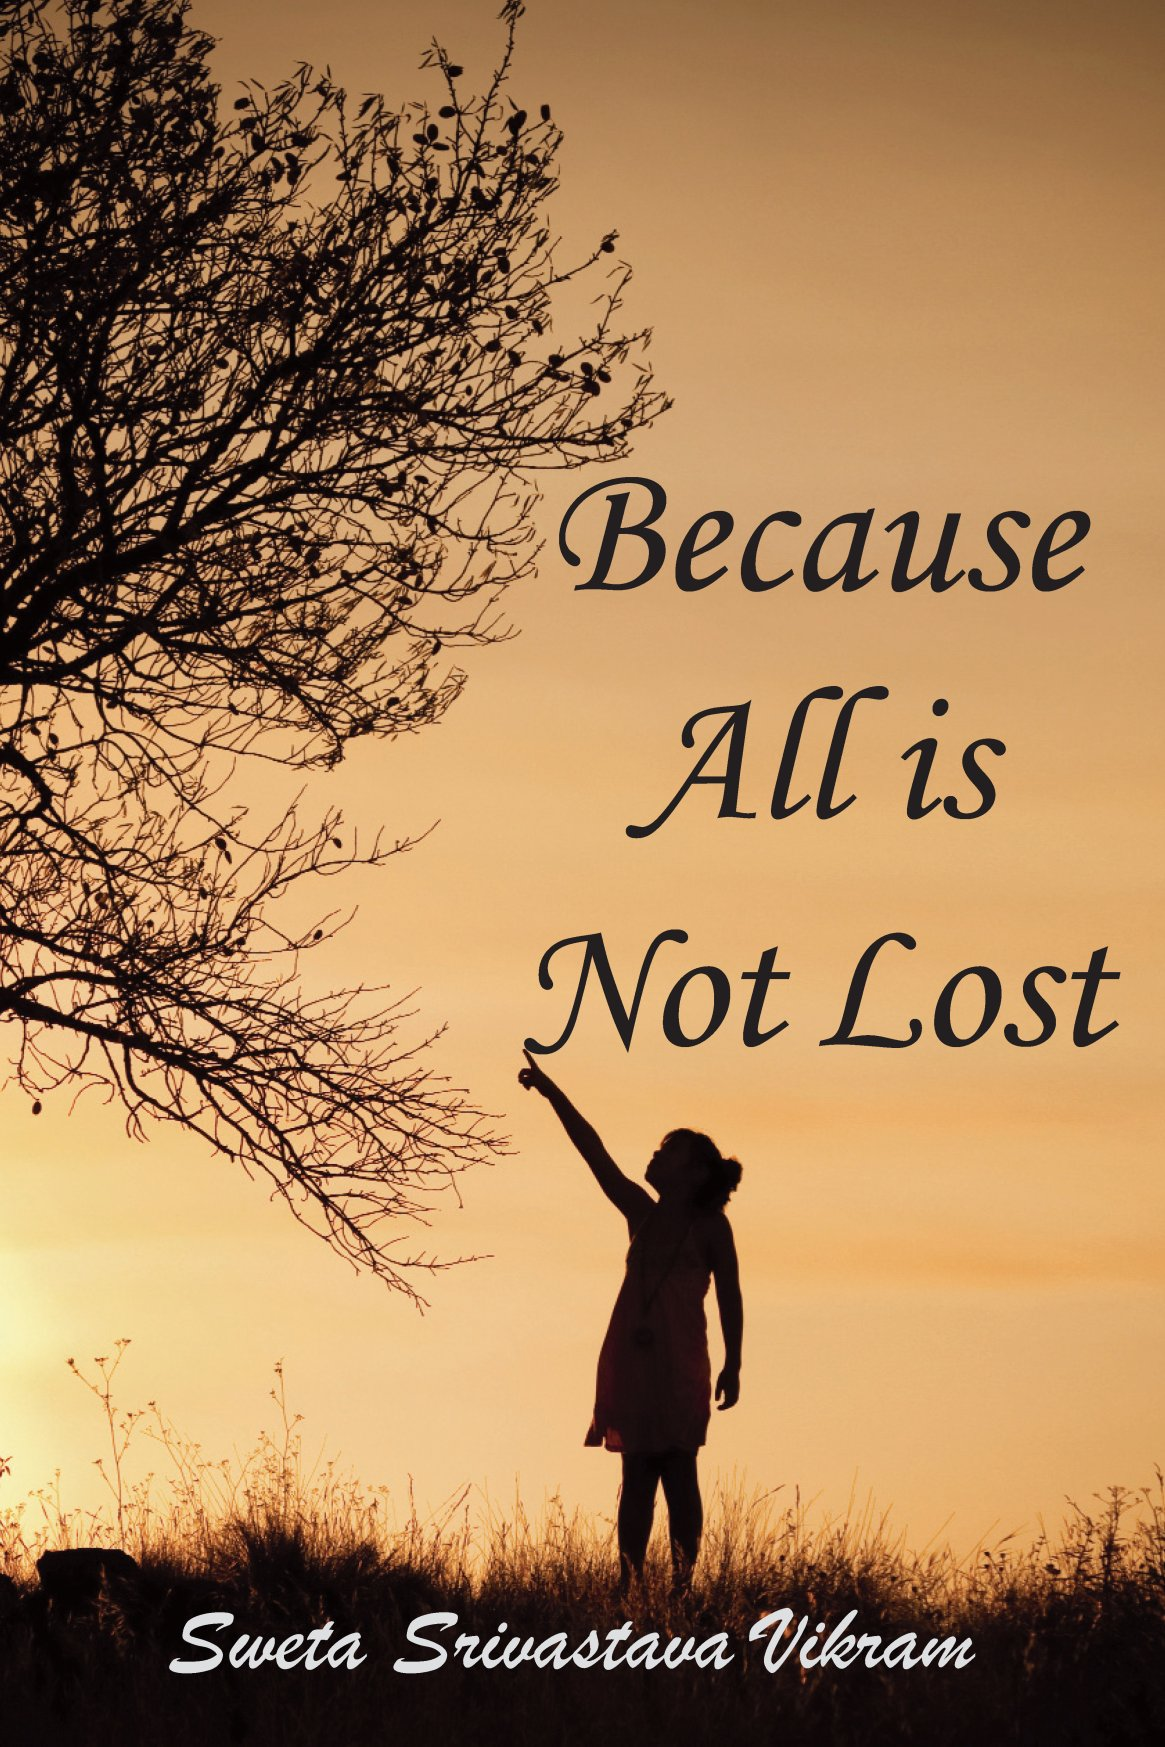 Because all is not lost: Verse on Grief 978-1-61599-046-7